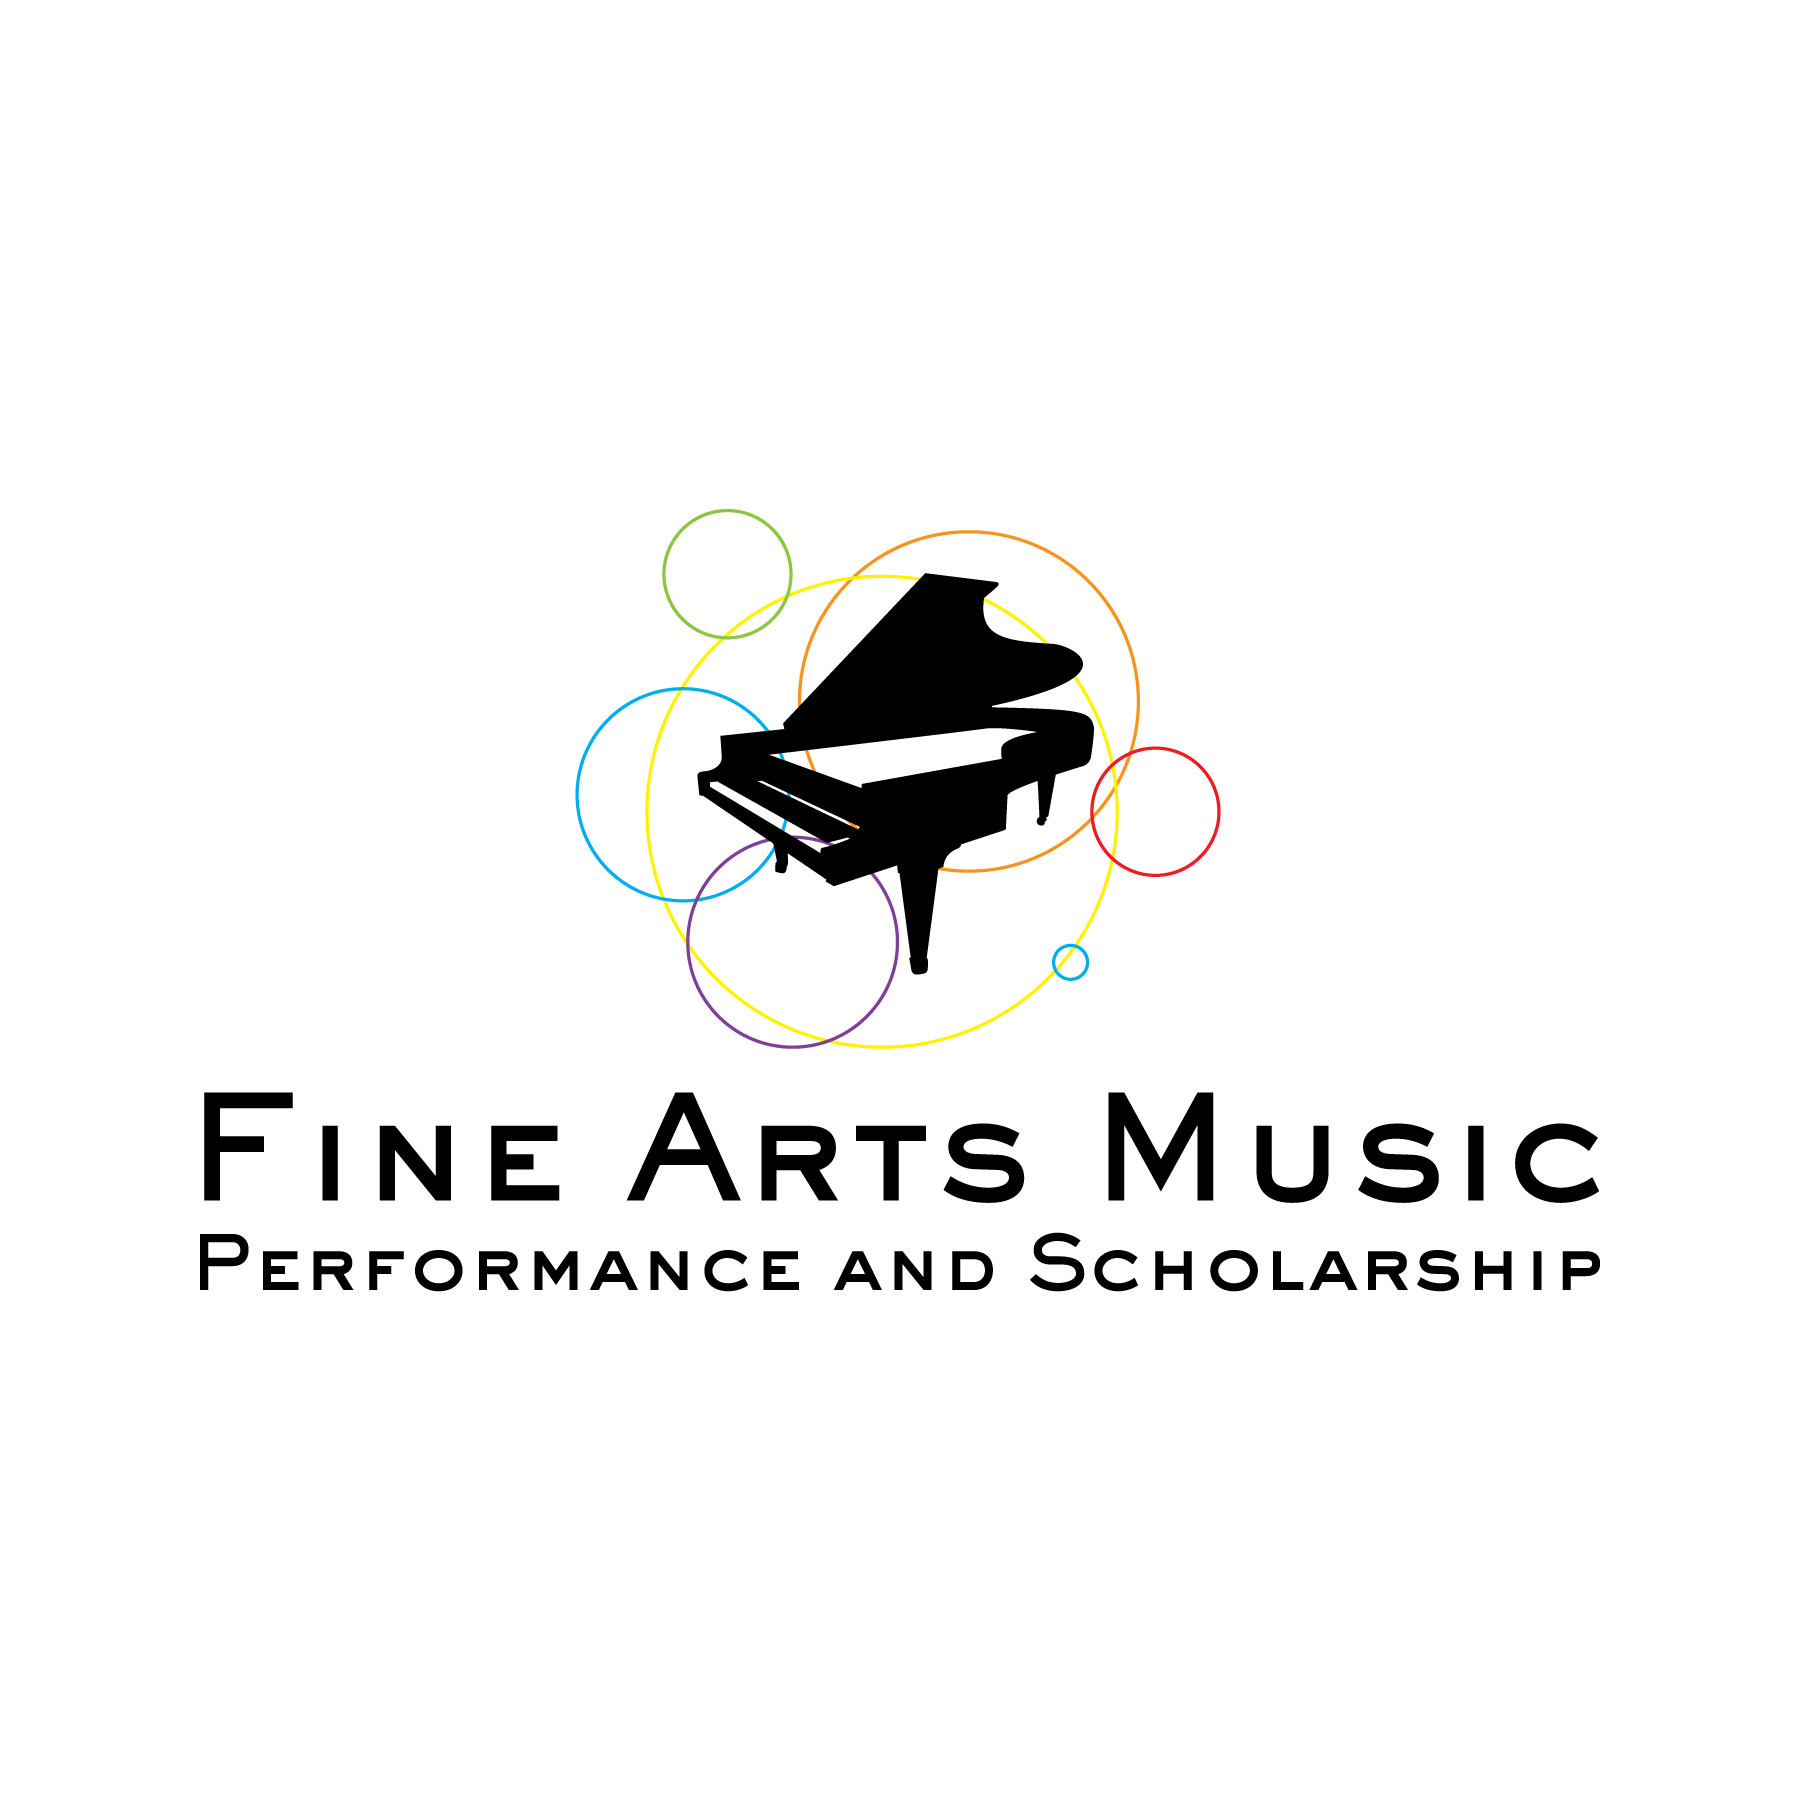 Fine Arts Music School - Performance and Scholarship